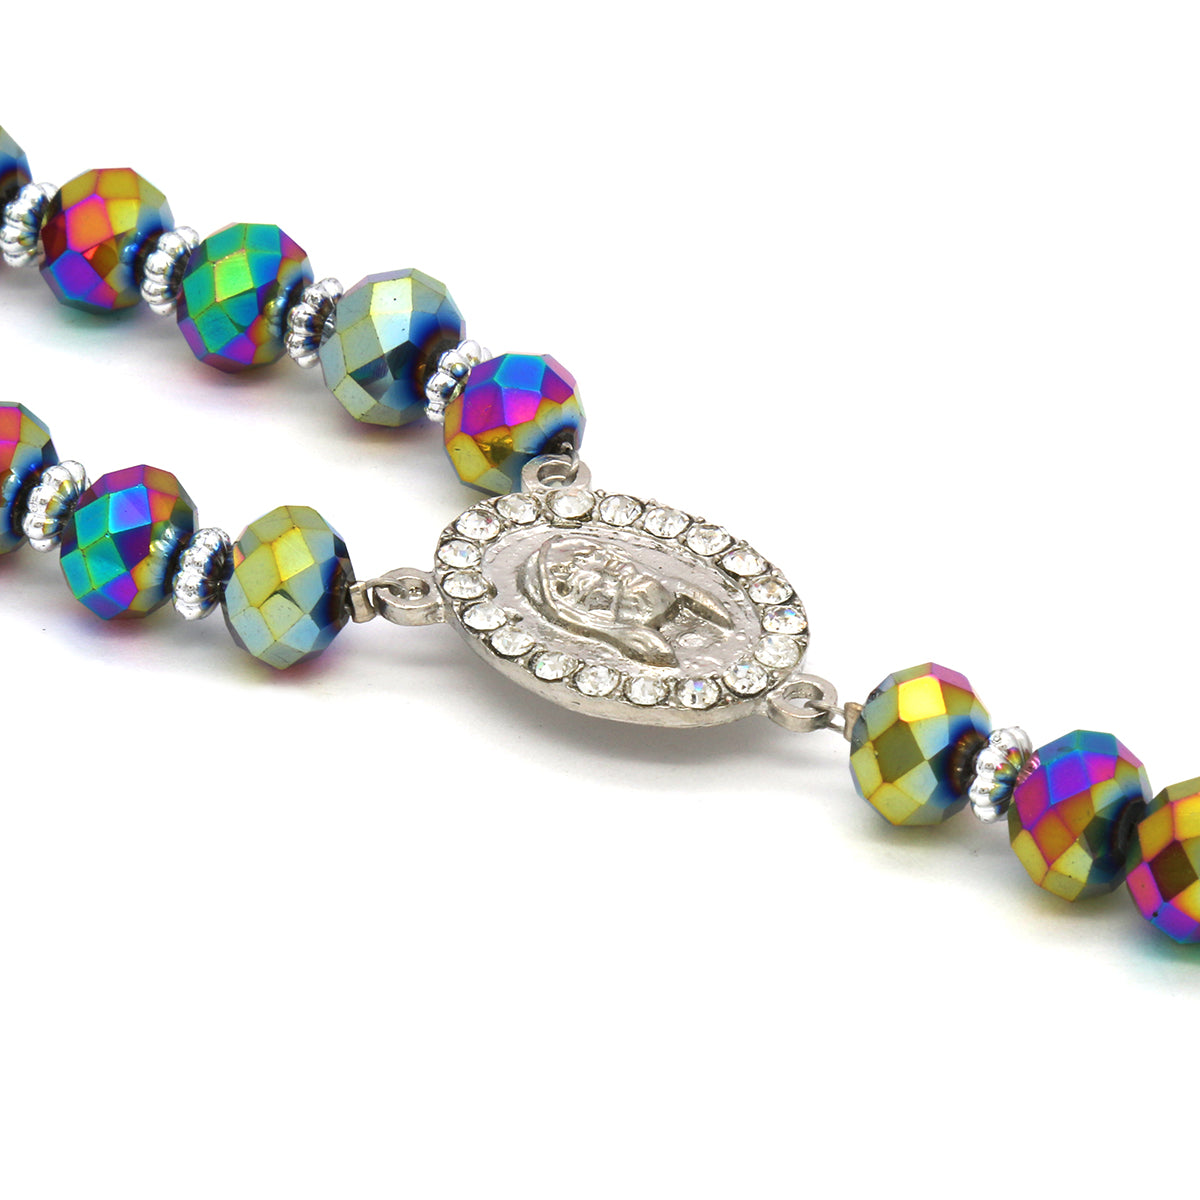 Rainbow Crystal Rosary With Cross Pendant